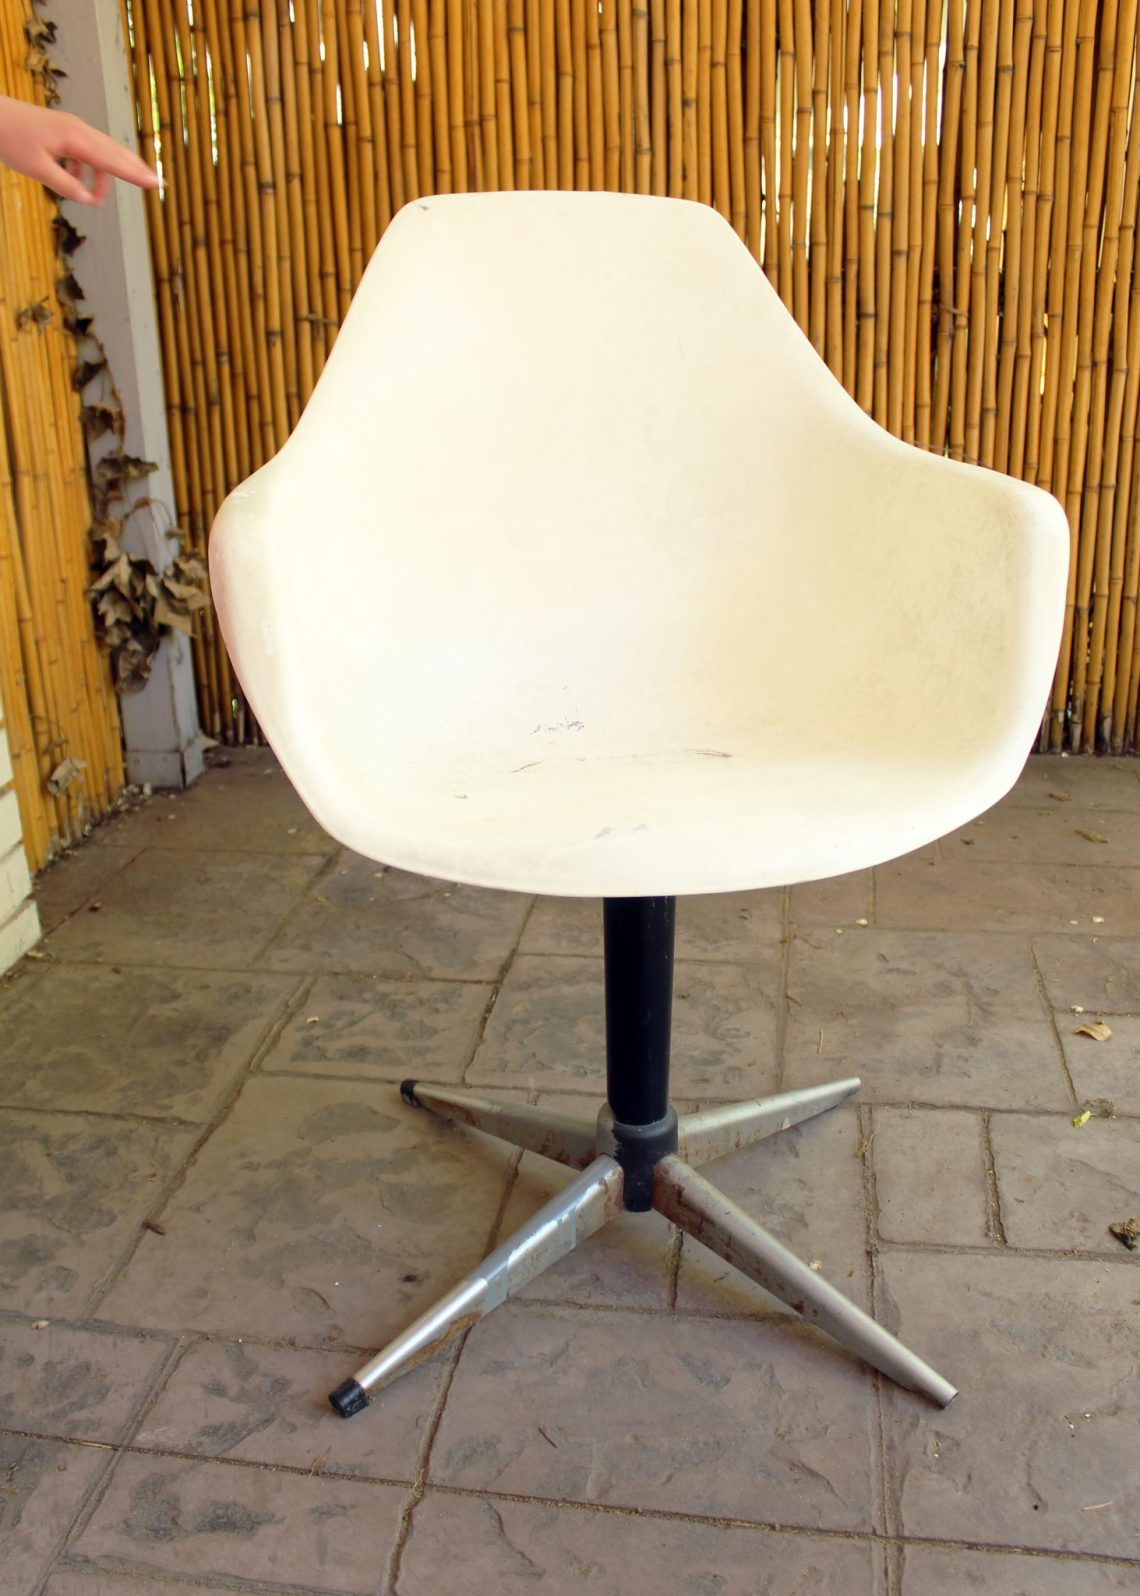 Before DIY Midcentury Modern Chair Makeover Tutorial